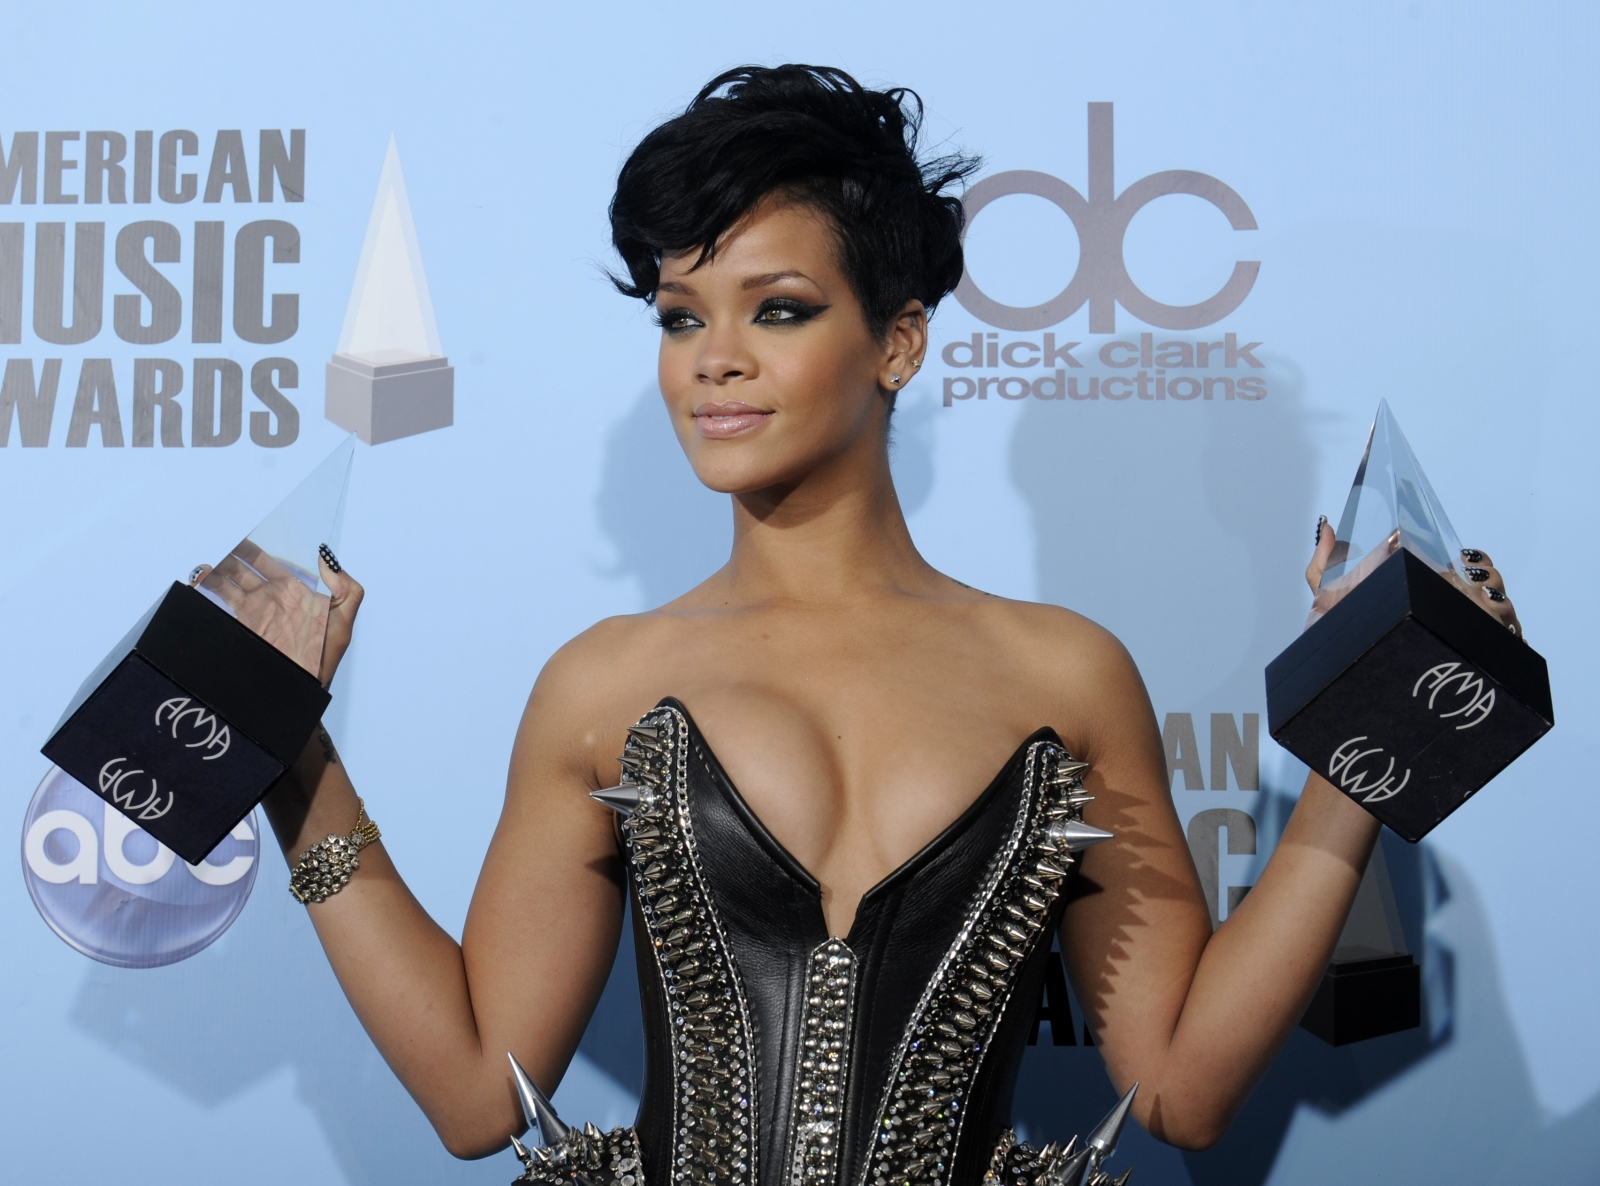 http://d.ibtimes.co.uk/en/full/1437049/rihanna.jpg?w=1180